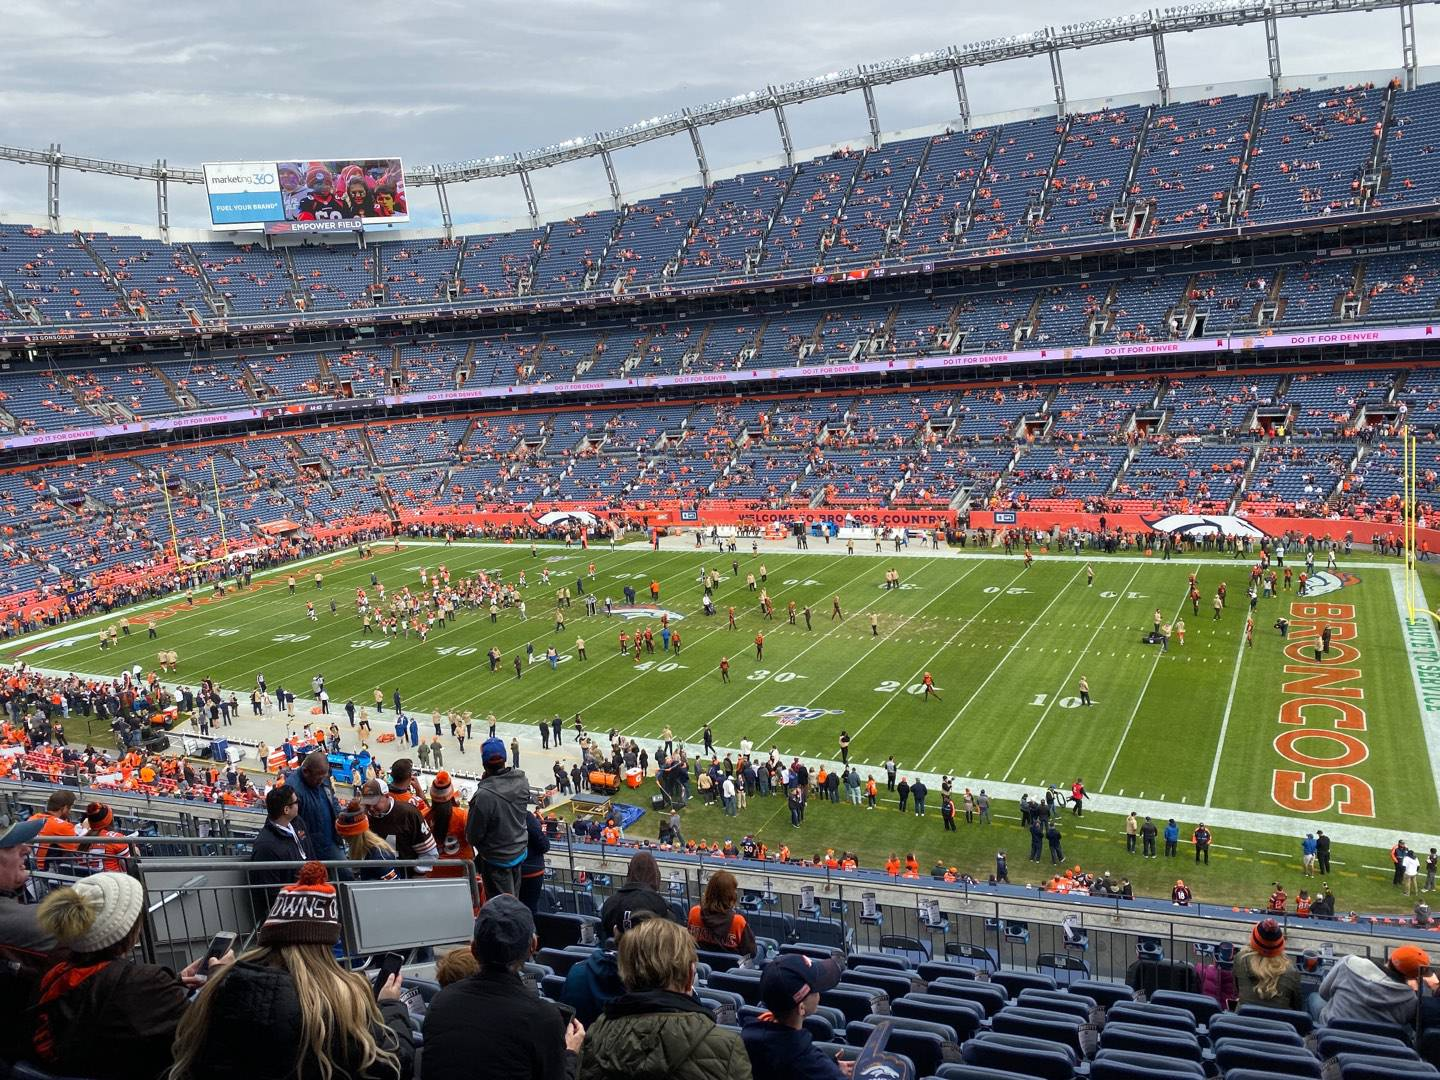 Empower Field at Mile High Stadium Section 304 Row 13 Seat 5